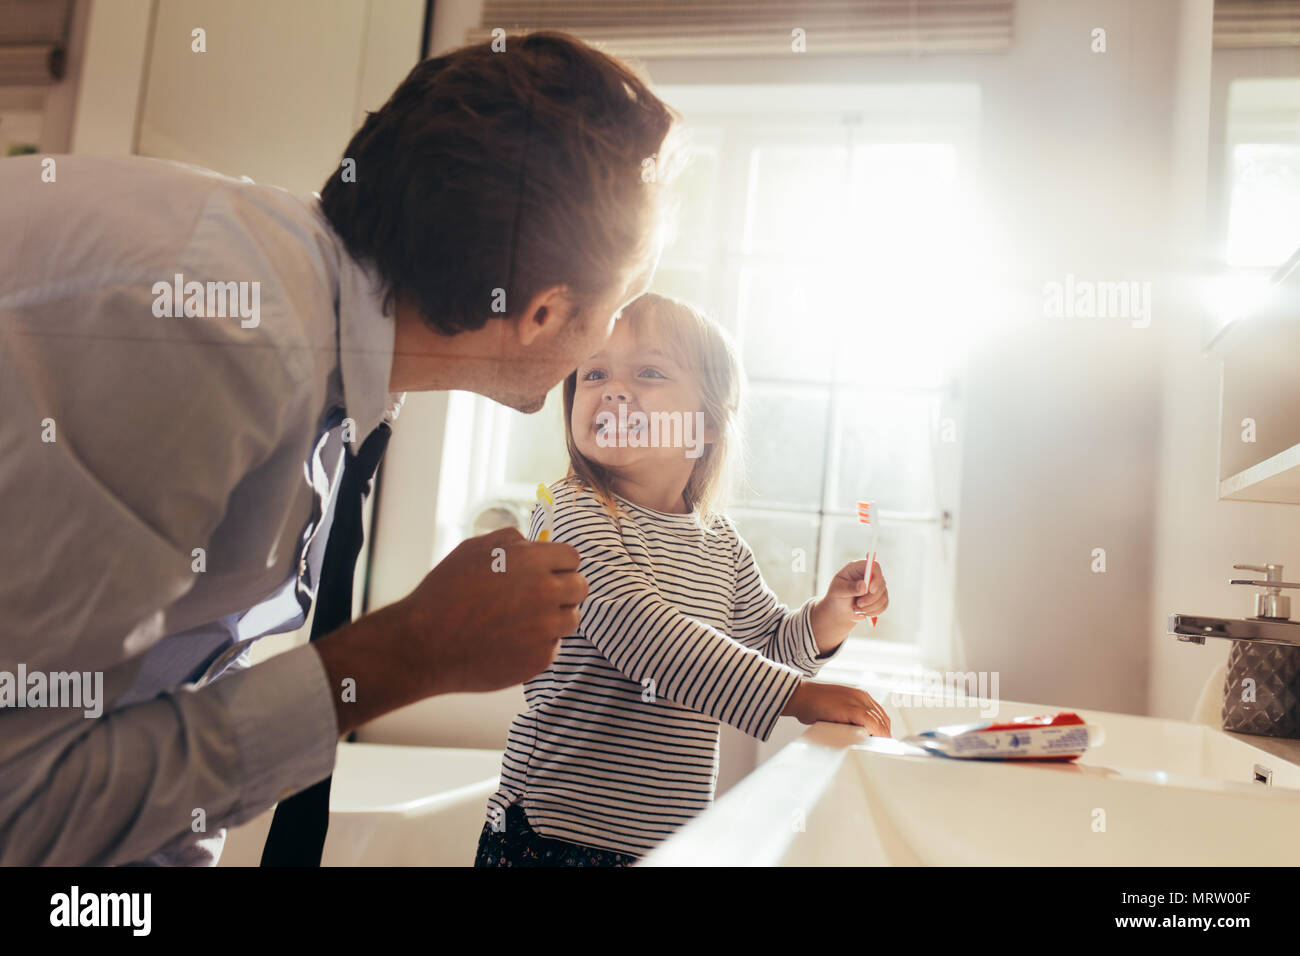 Father and daughter brushing teeth standing in bathroom and looking at each other. Man teaching his daughter how to brush teeth. - Stock Image